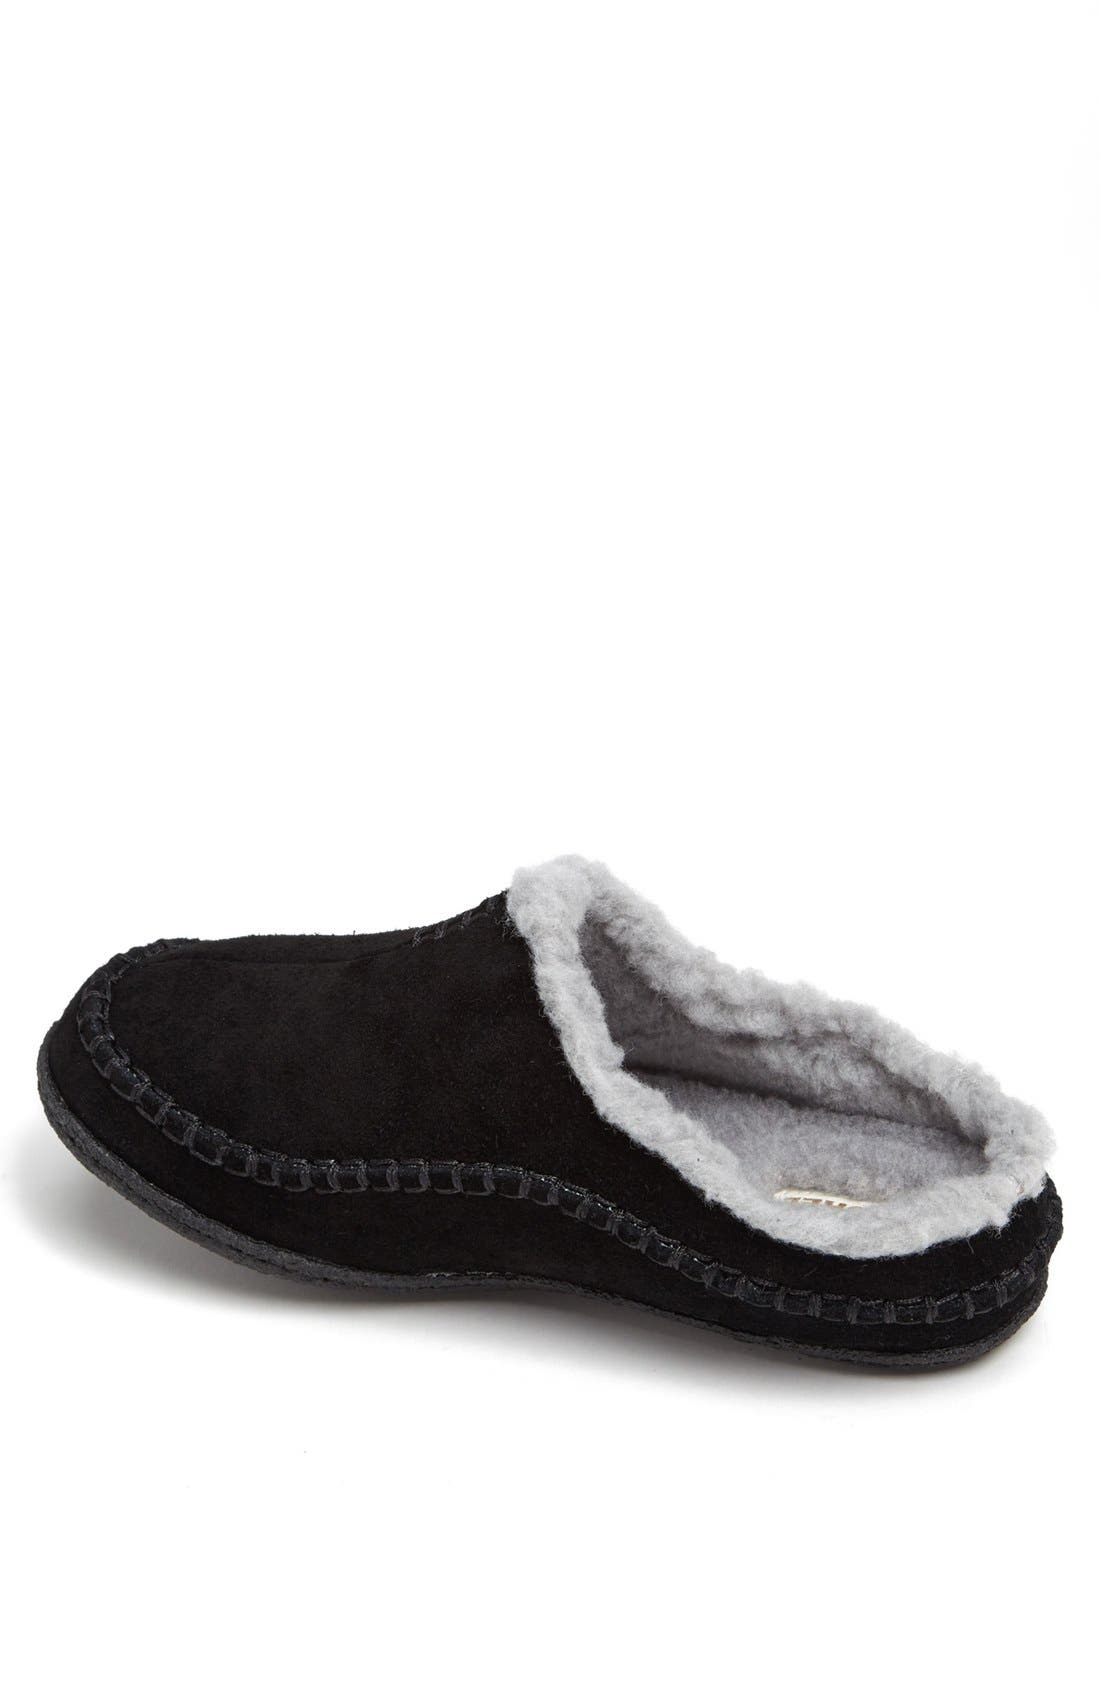 'Falcon Ridge' Slipper,                             Alternate thumbnail 2, color,                             010